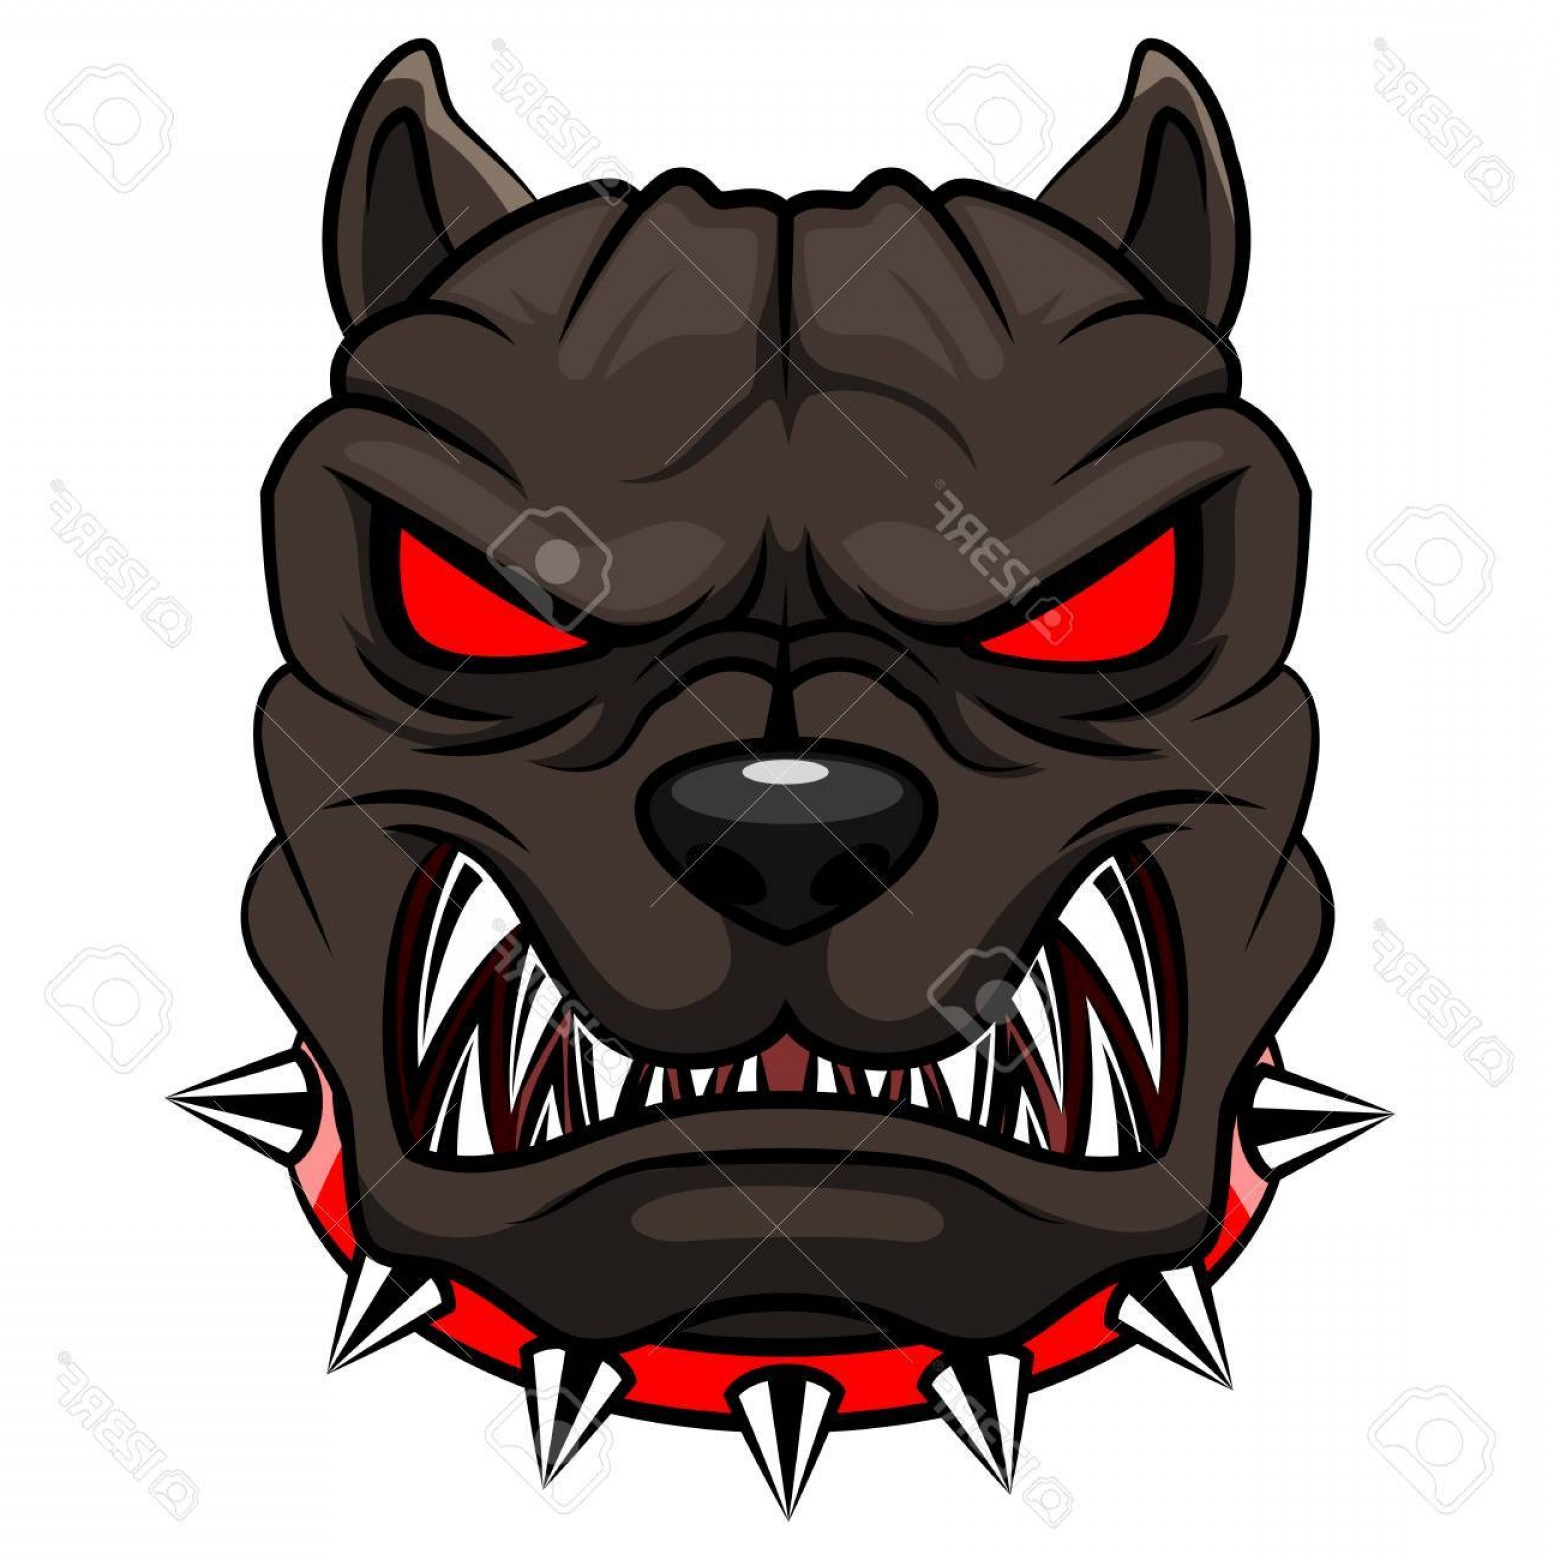 Dog Mascot Vector: Photostock Vector Angry Dog Mascot Cartoon Vector Illustration